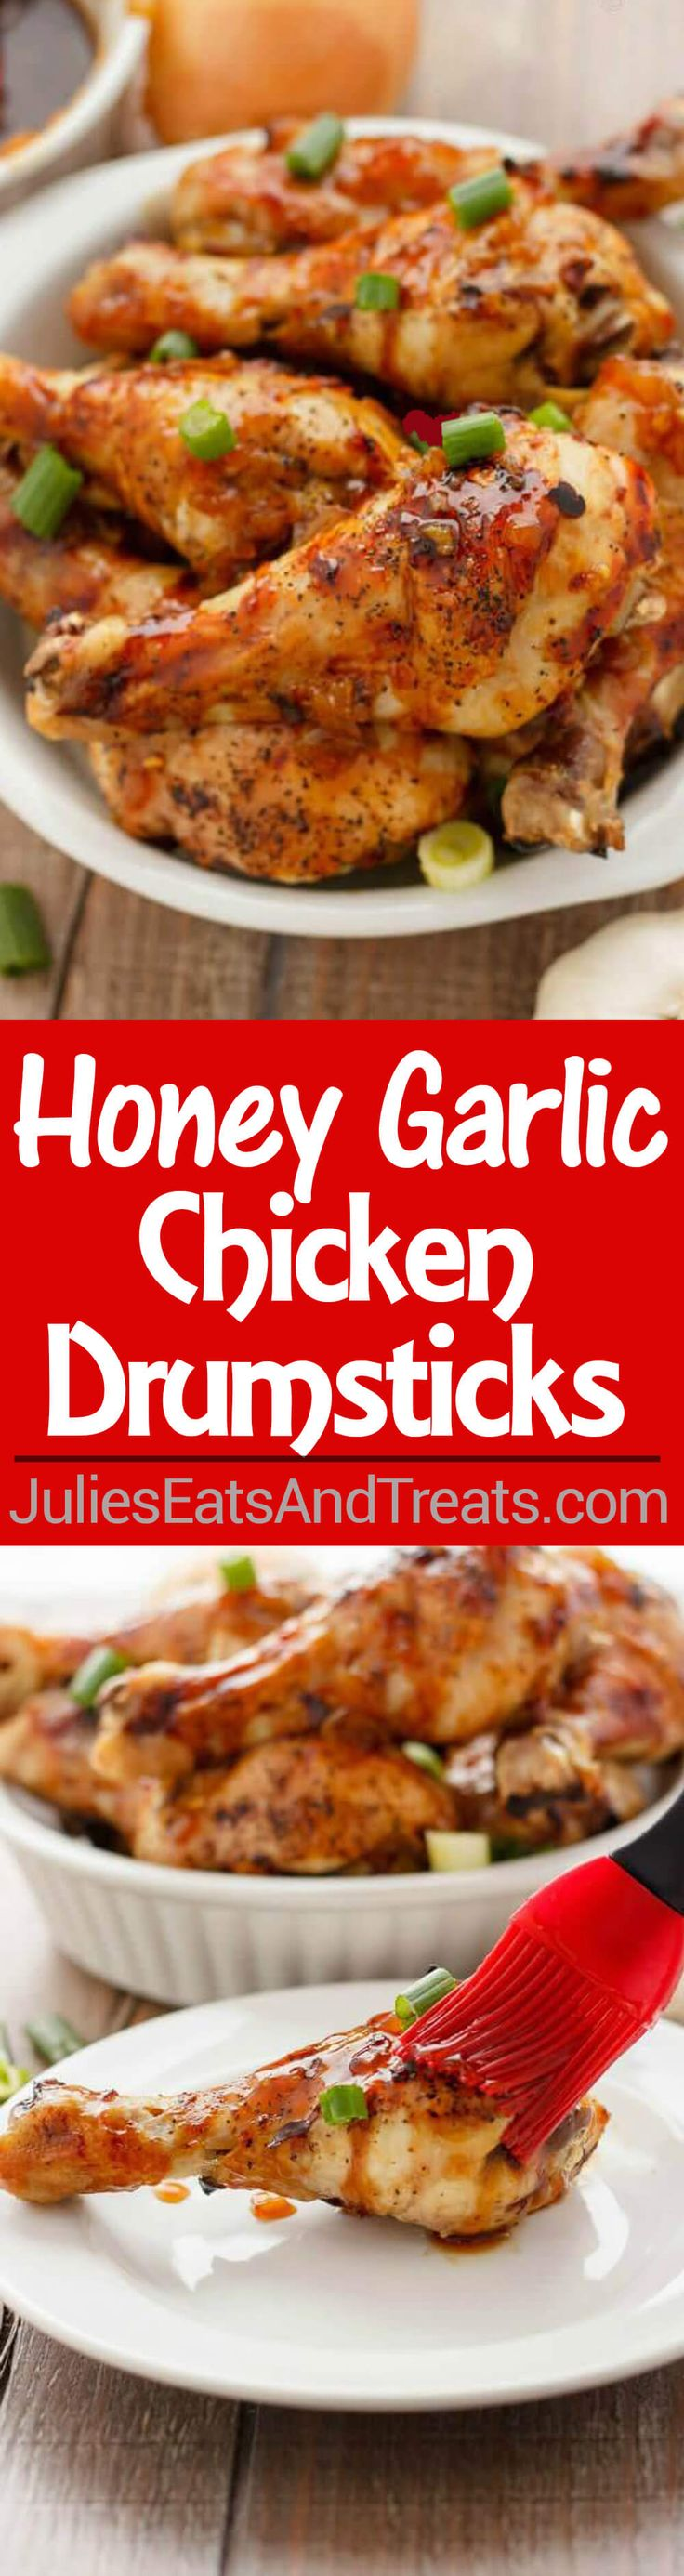 Honey Garlic Chicken Drumsticks - Take a cost-effective cut of chicken and transform it into something amazing for a weeknight meal! ~ http://www.julieseatsandtreats.com